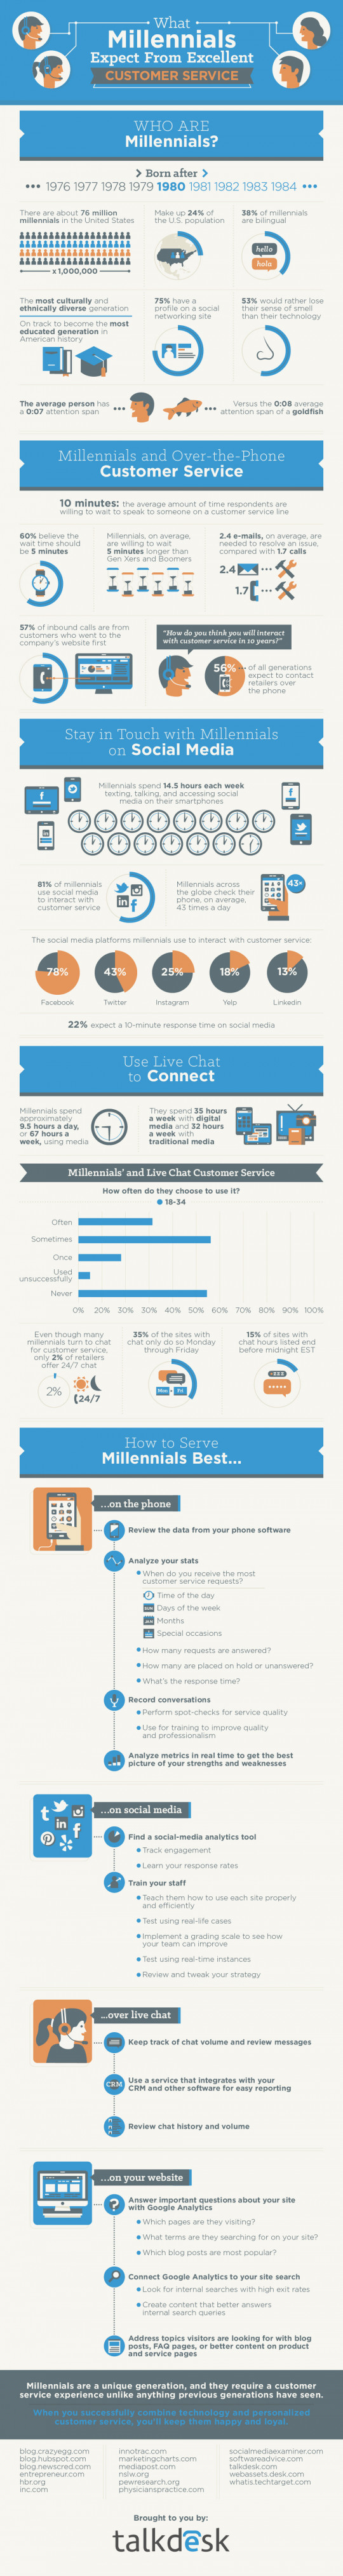 Delivering Excellent Customer Service: What Millennials Expect